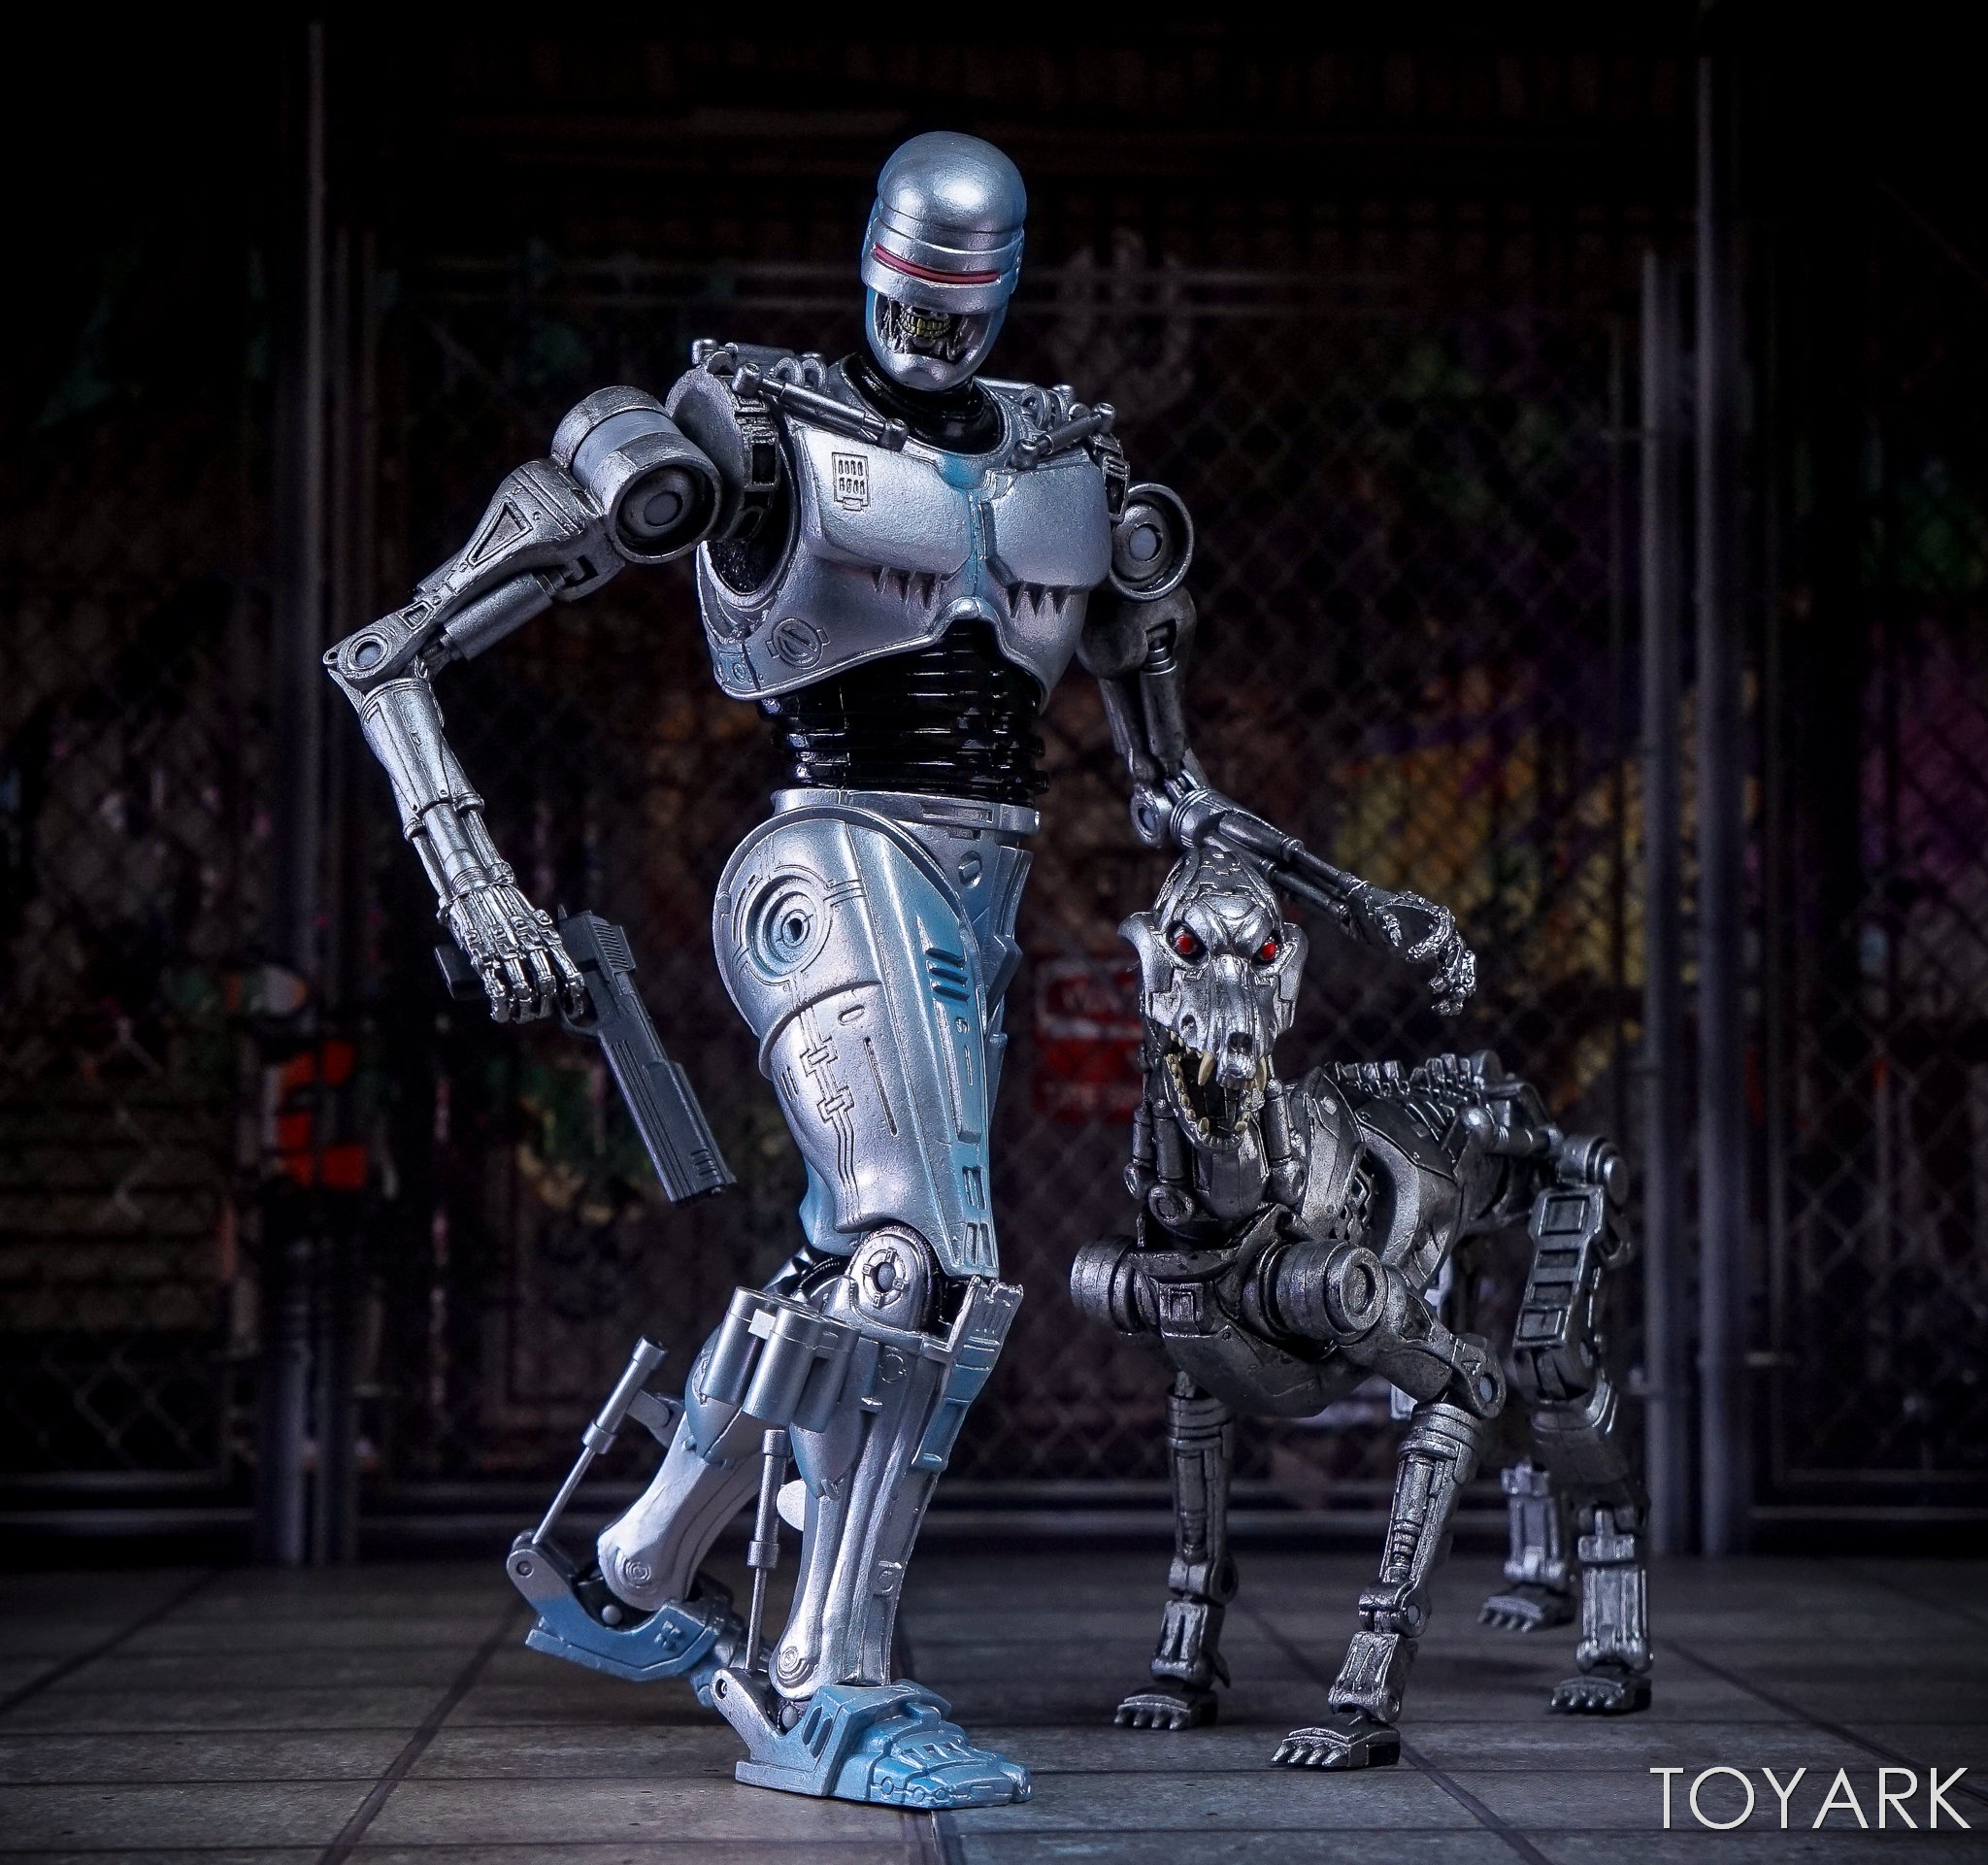 http://news.toyark.com/wp-content/uploads/sites/4/2017/12/NECA-EndoCop-and-Terminator-Dog-029.jpg